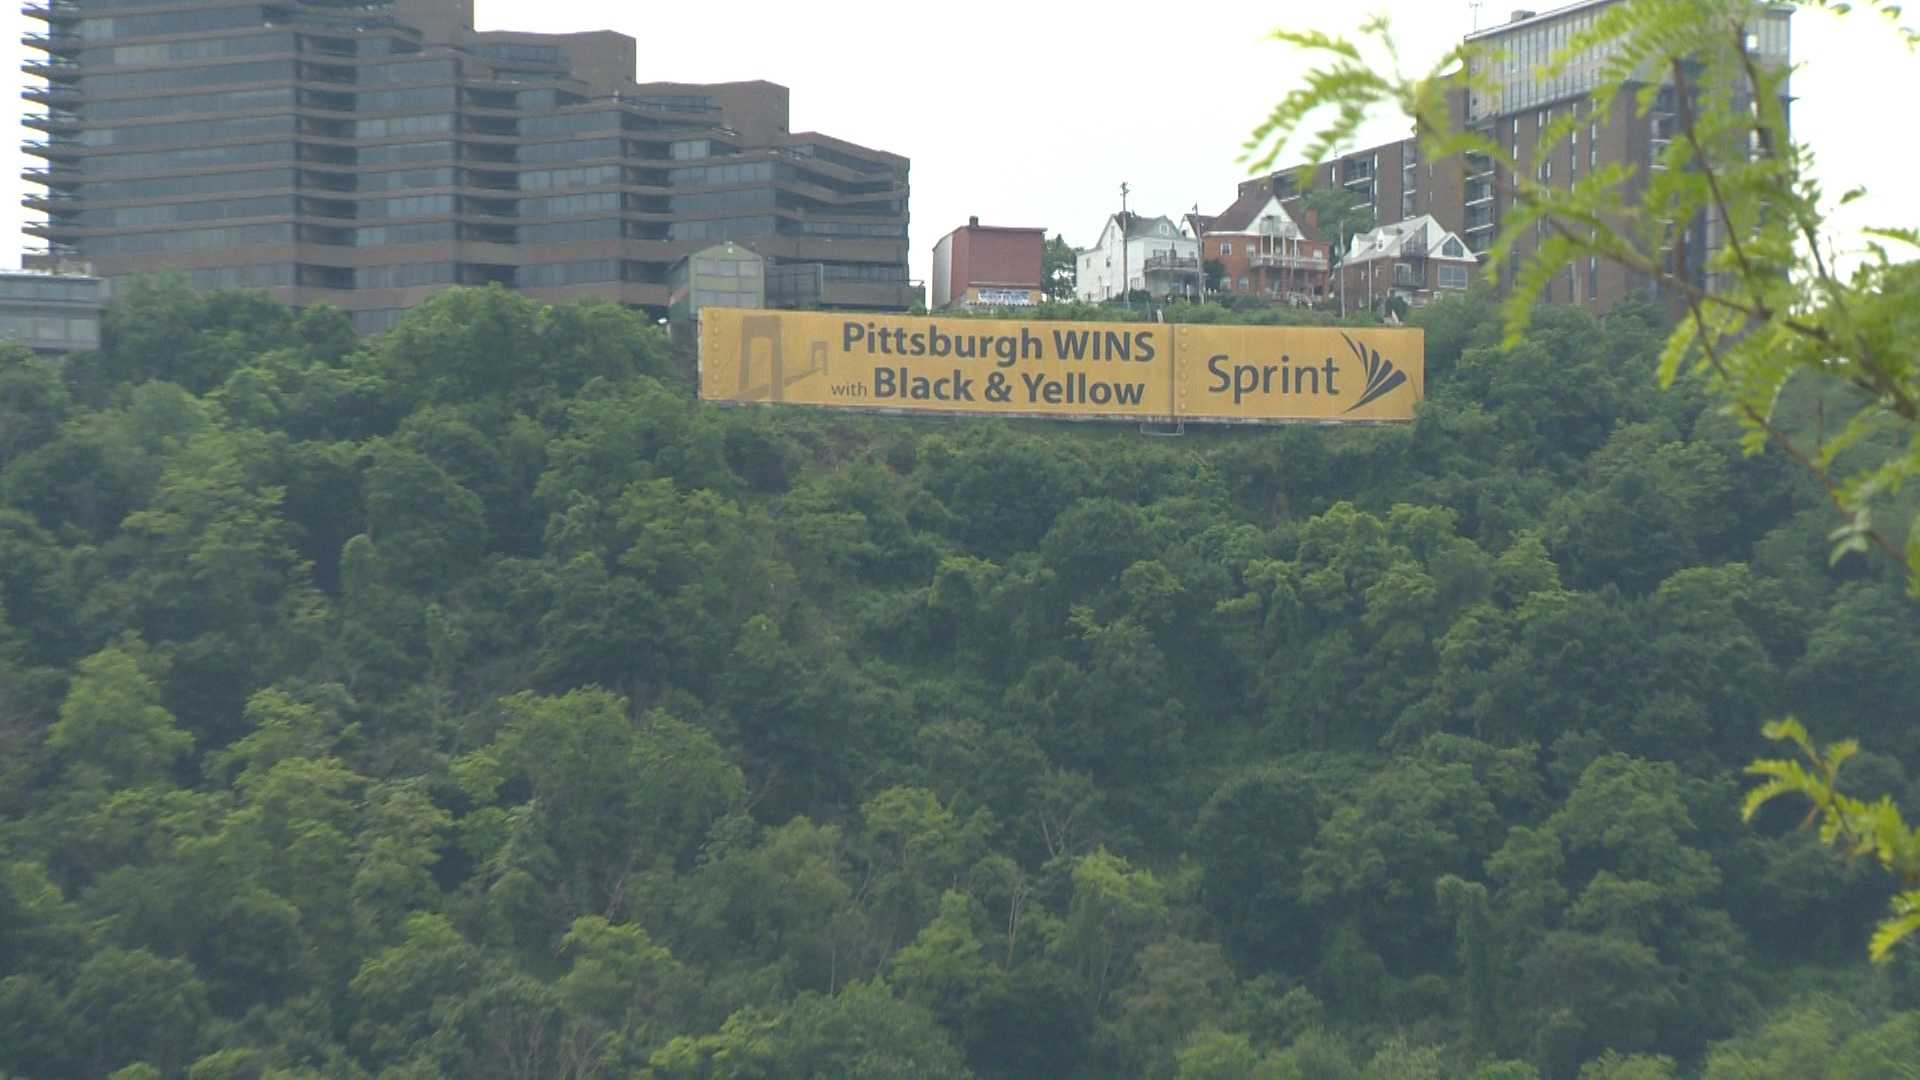 Sprint sign - Mount Washington